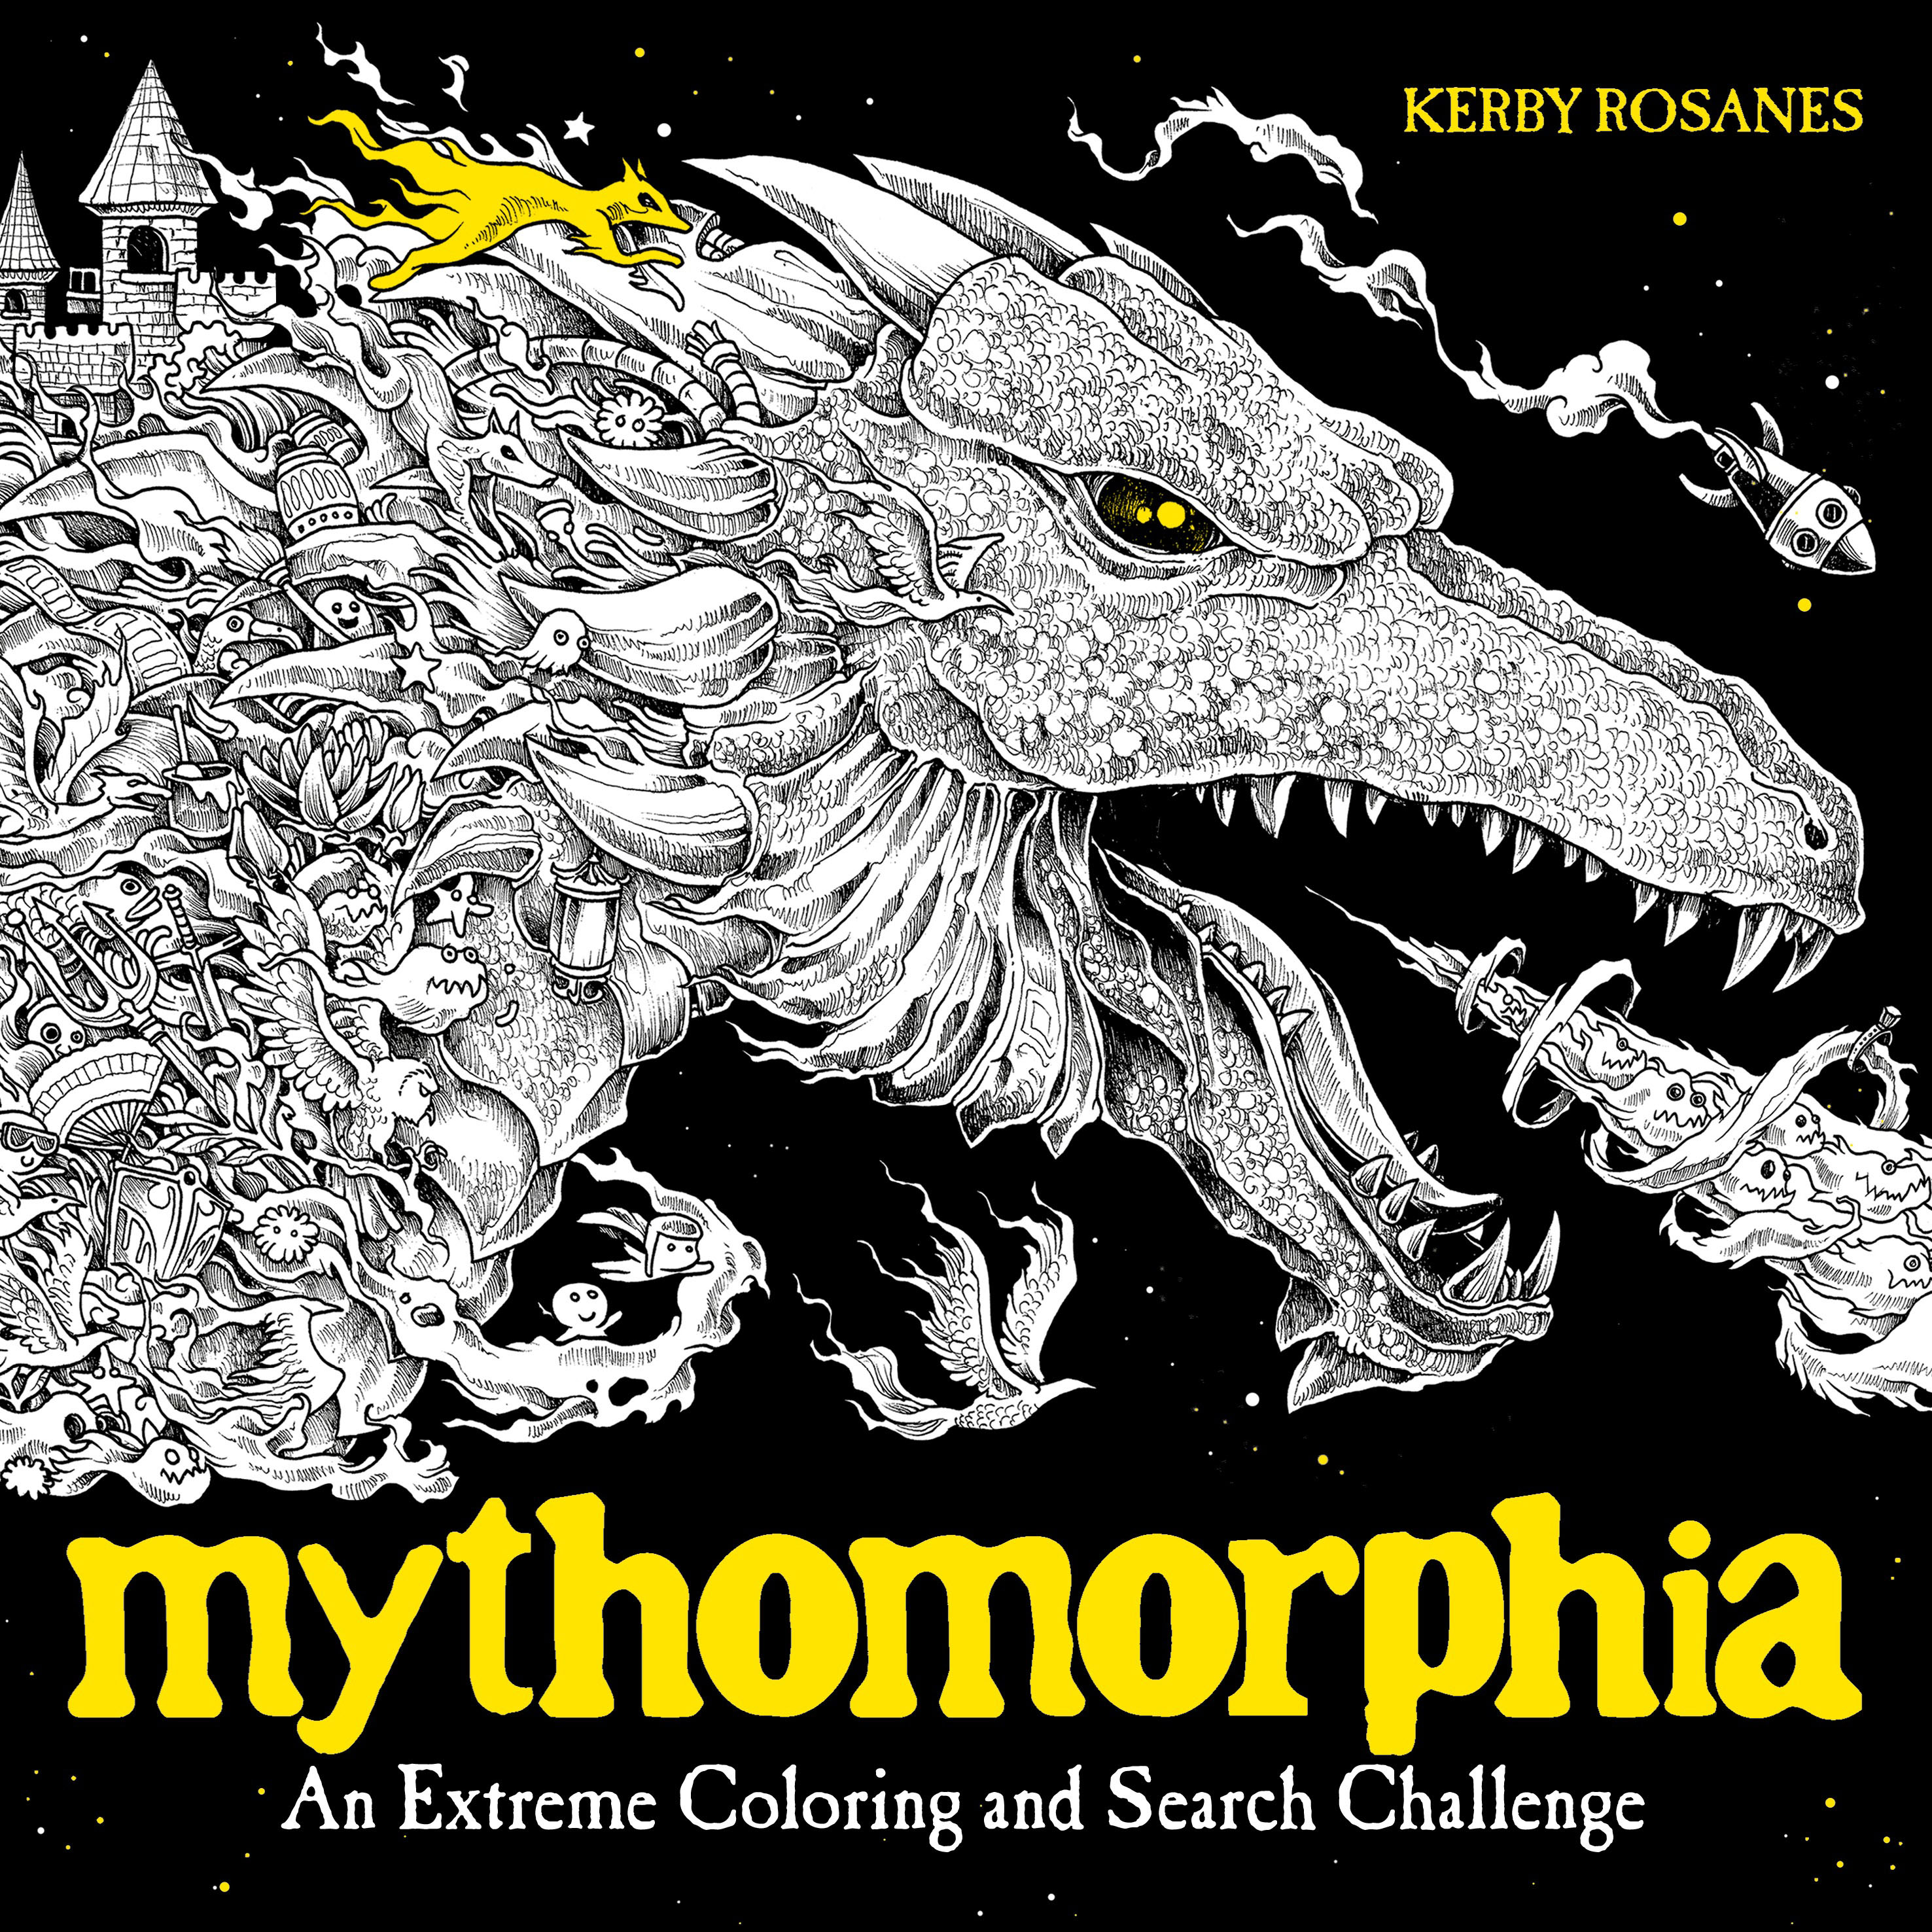 Mythomorphia: An Extreme Coloring and Search Challenge fantastic cities a coloring book of amazing places real and imagined